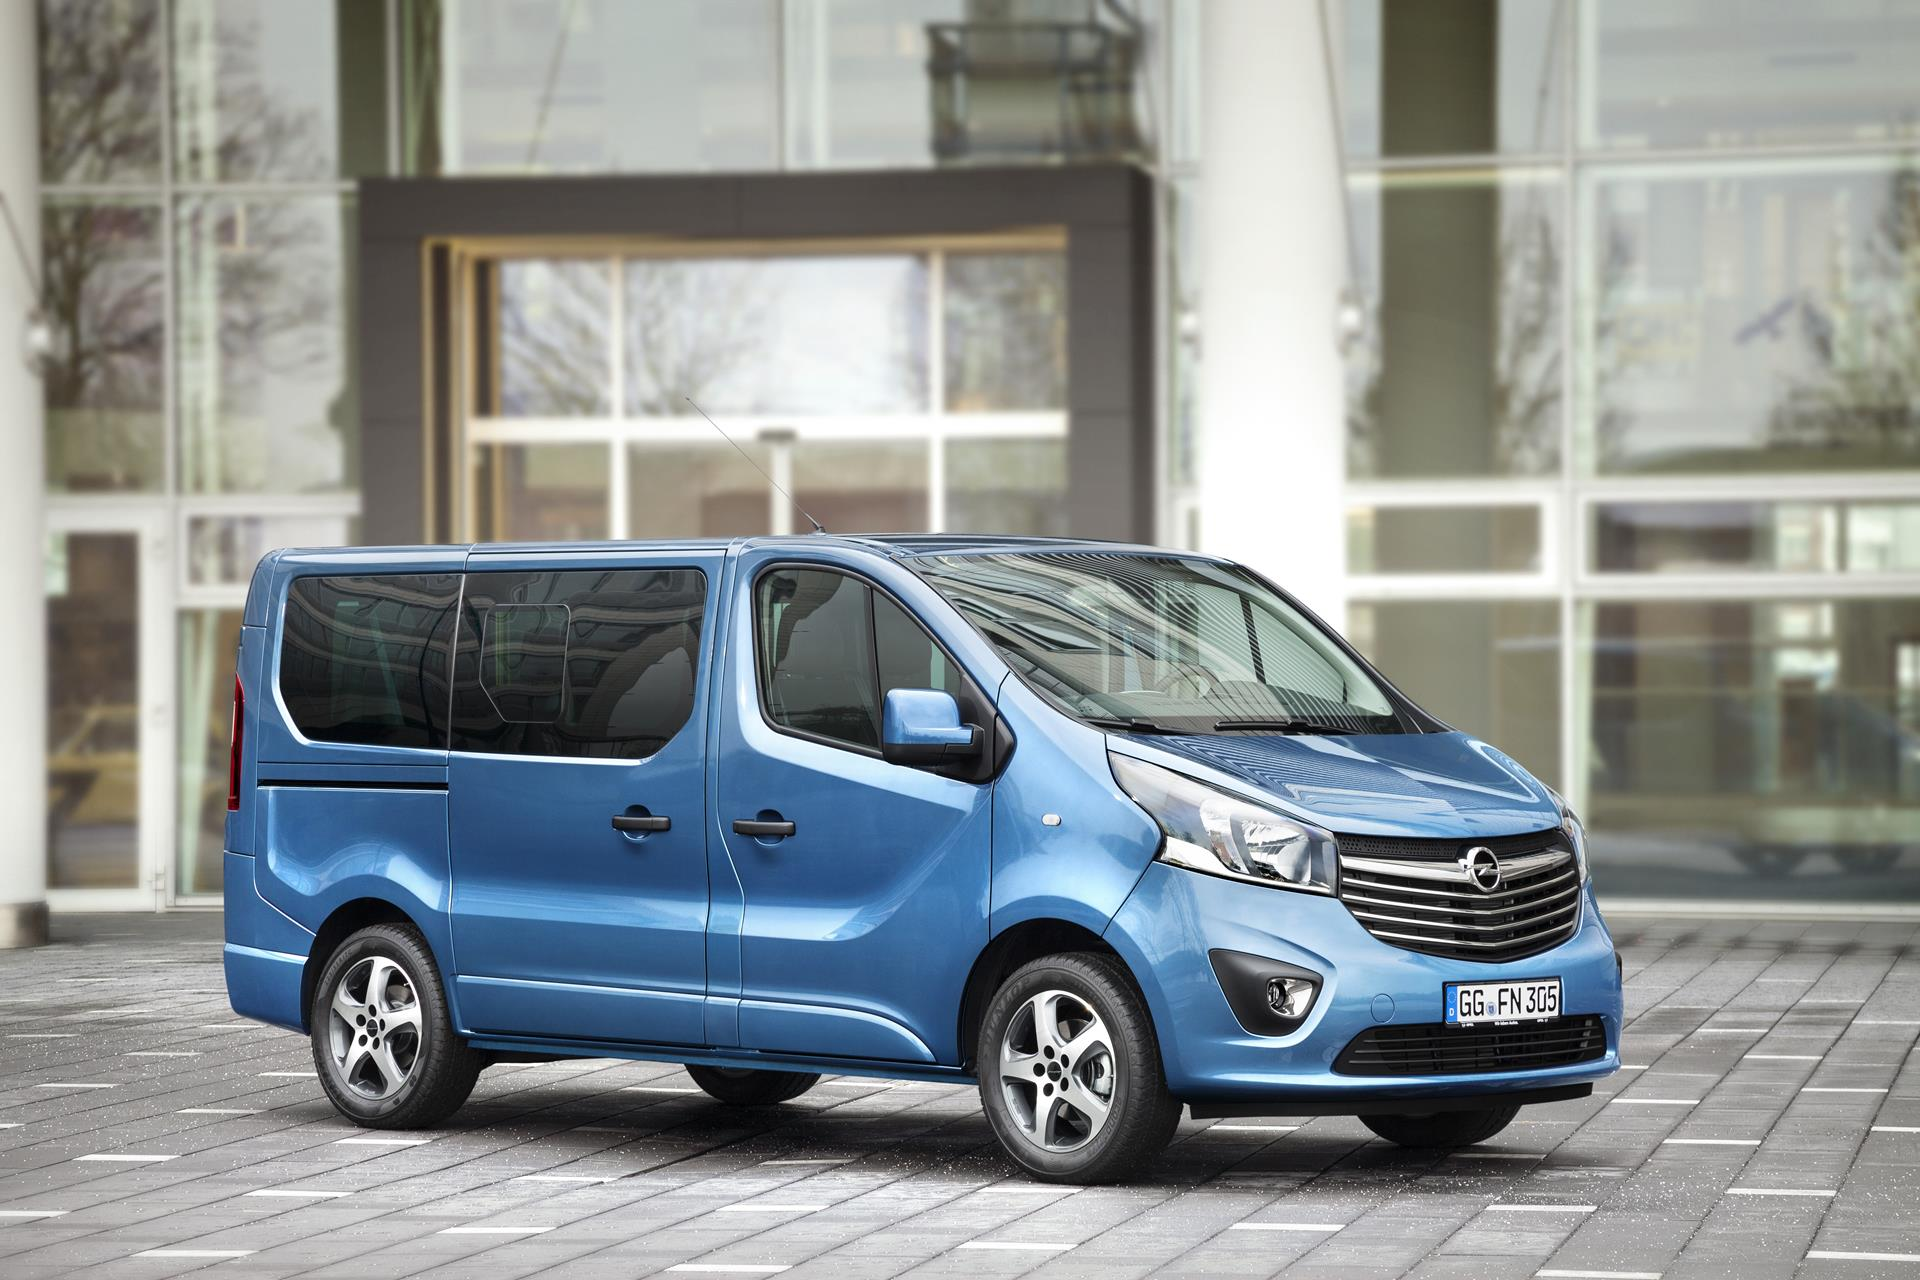 2015 opel vivaro news and information. Black Bedroom Furniture Sets. Home Design Ideas